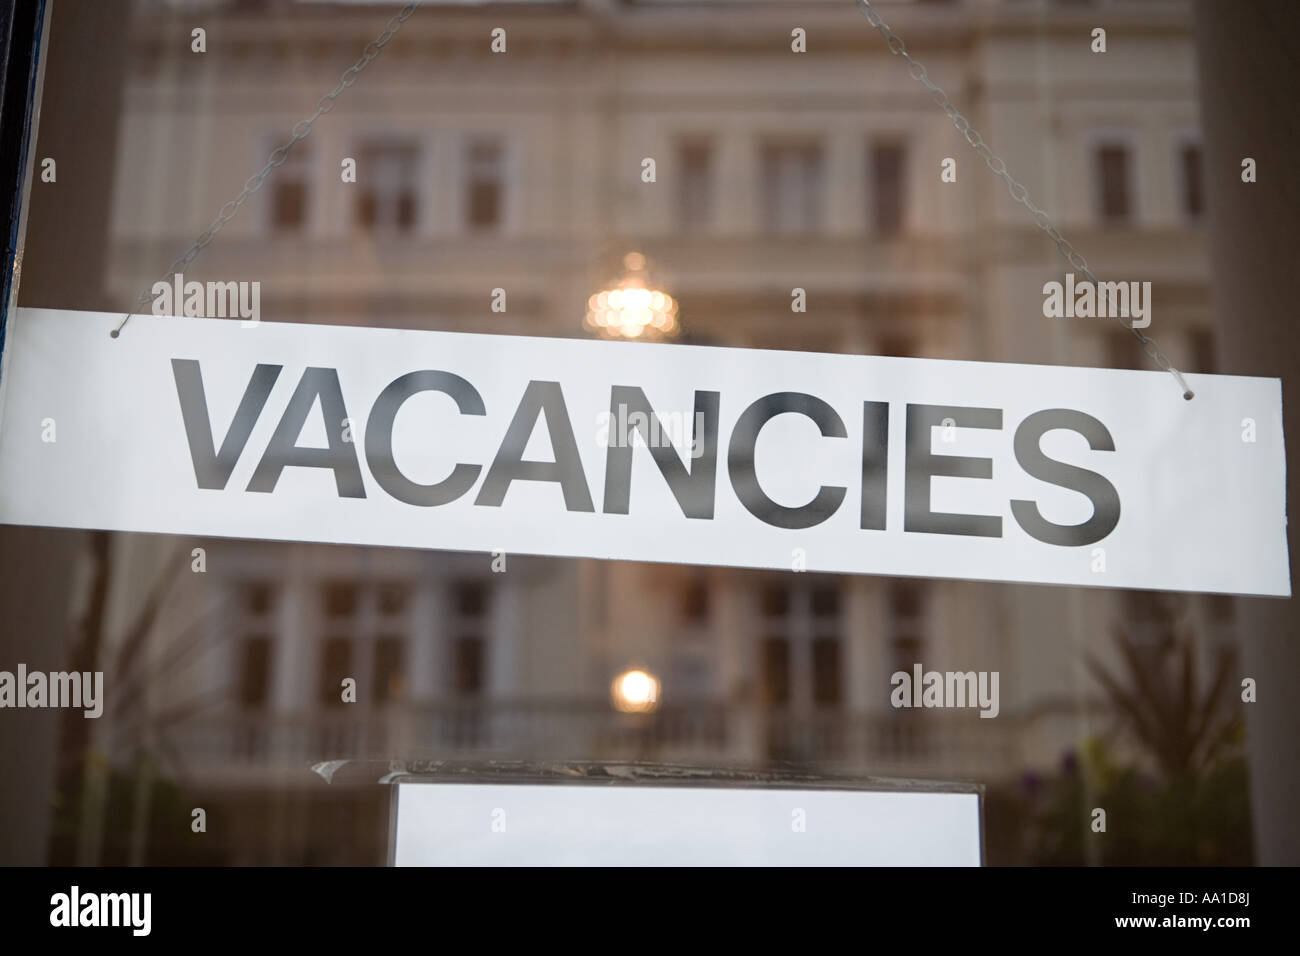 Vacancy sign - Stock Image